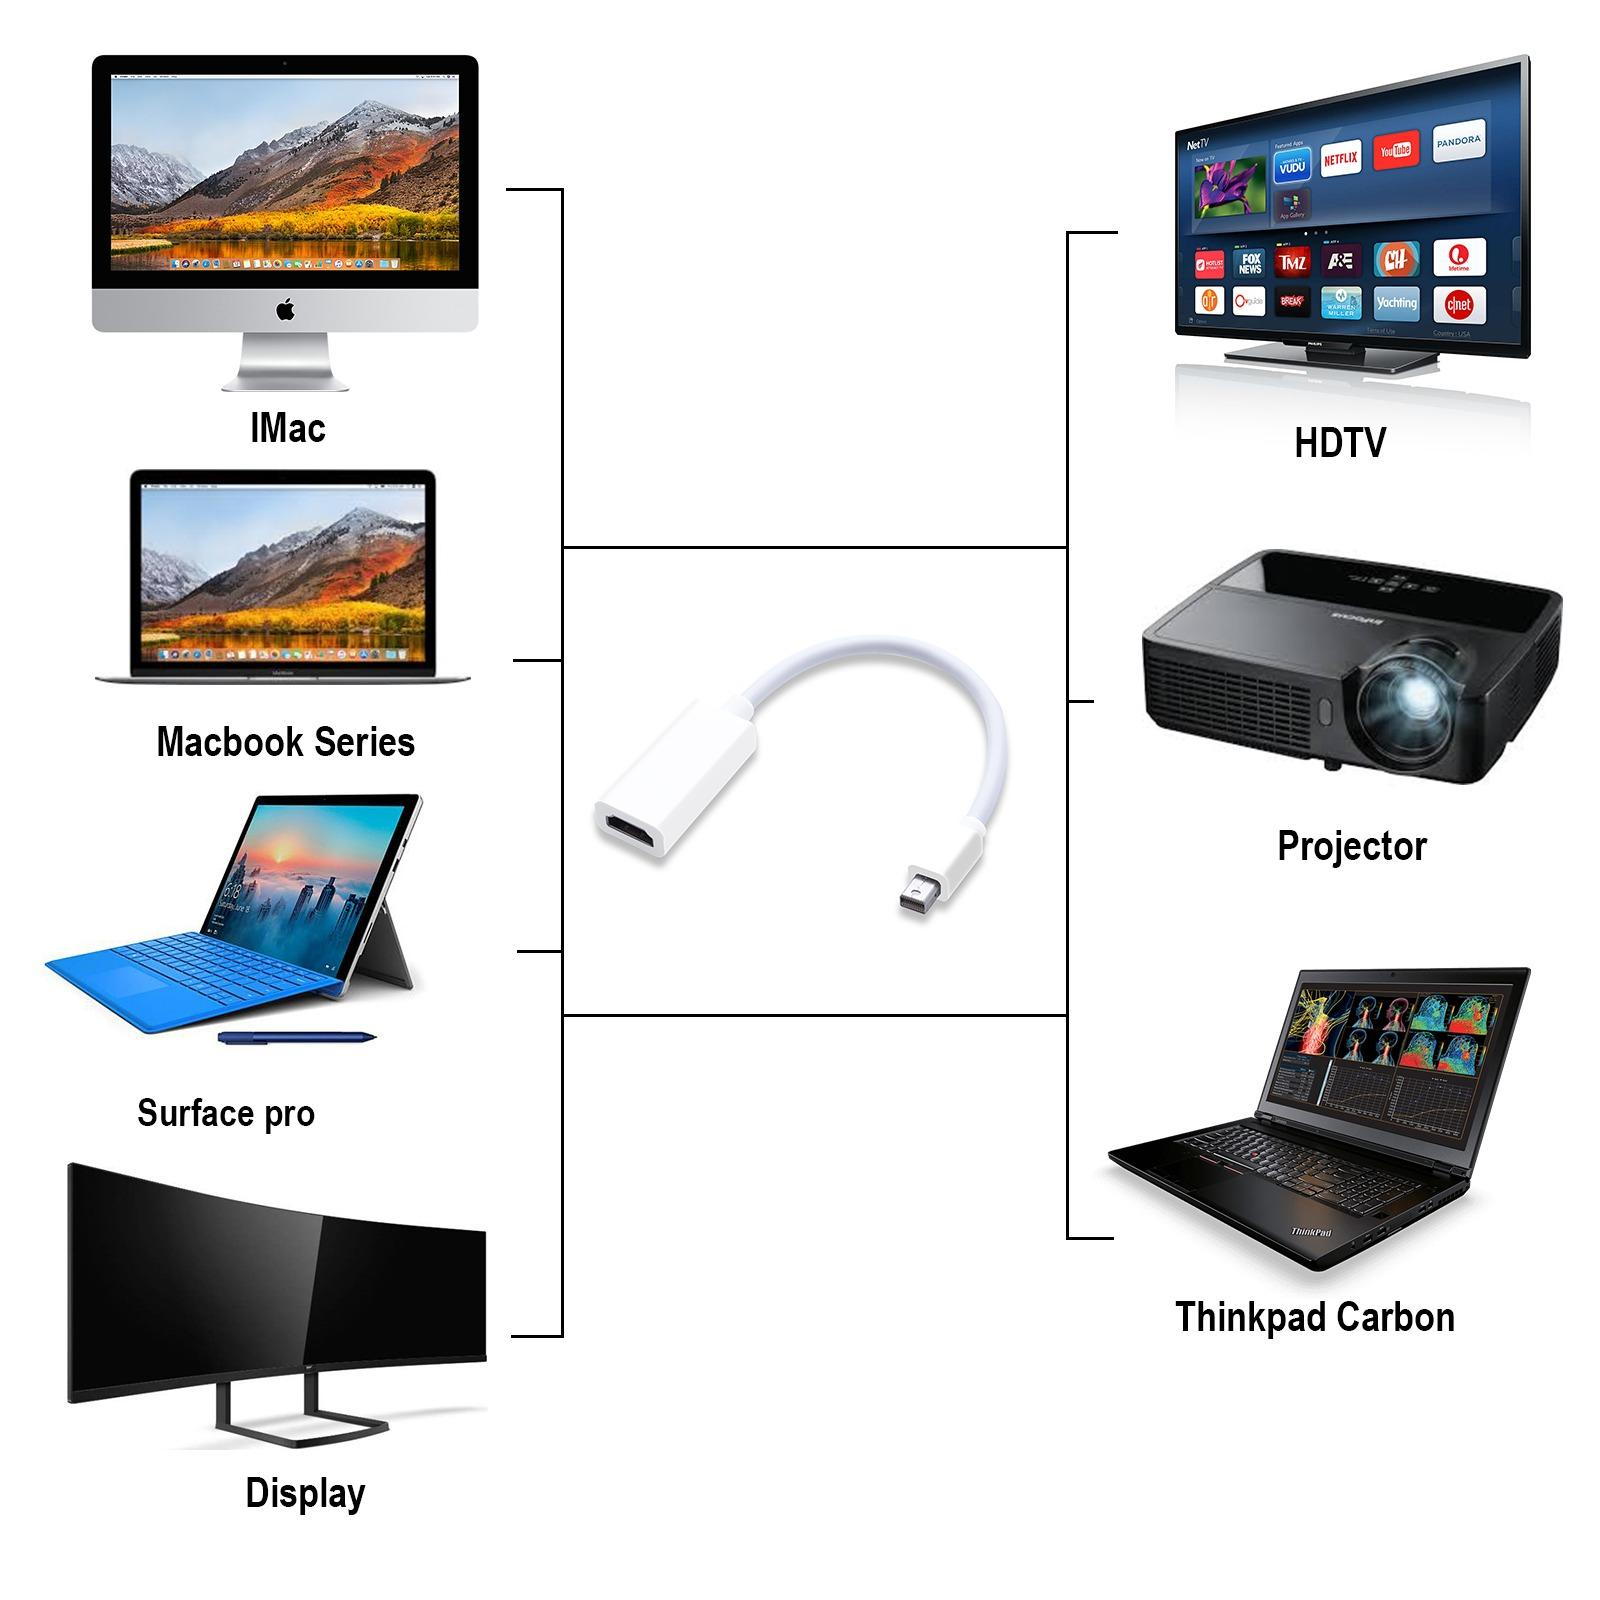 Savfy Mini Dp To Hdmi Cable Adapter,display Port To Hdmi Male To Female Adapter Cable Converter By Wripples.